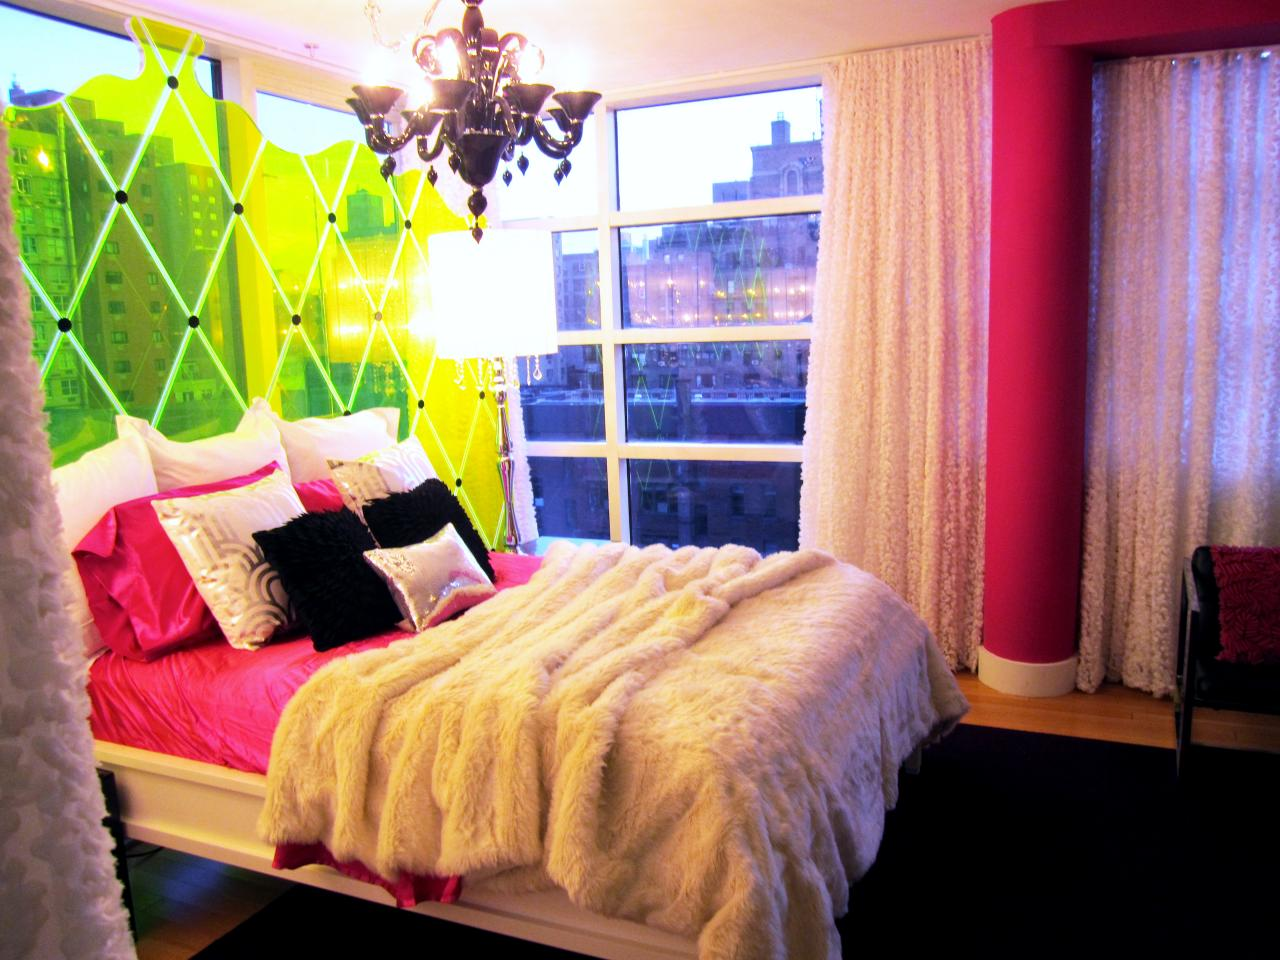 Comfortable Masterbed with Colorful Bedroom Curtain Ideas plus Pink Pillar under Large Ceiling